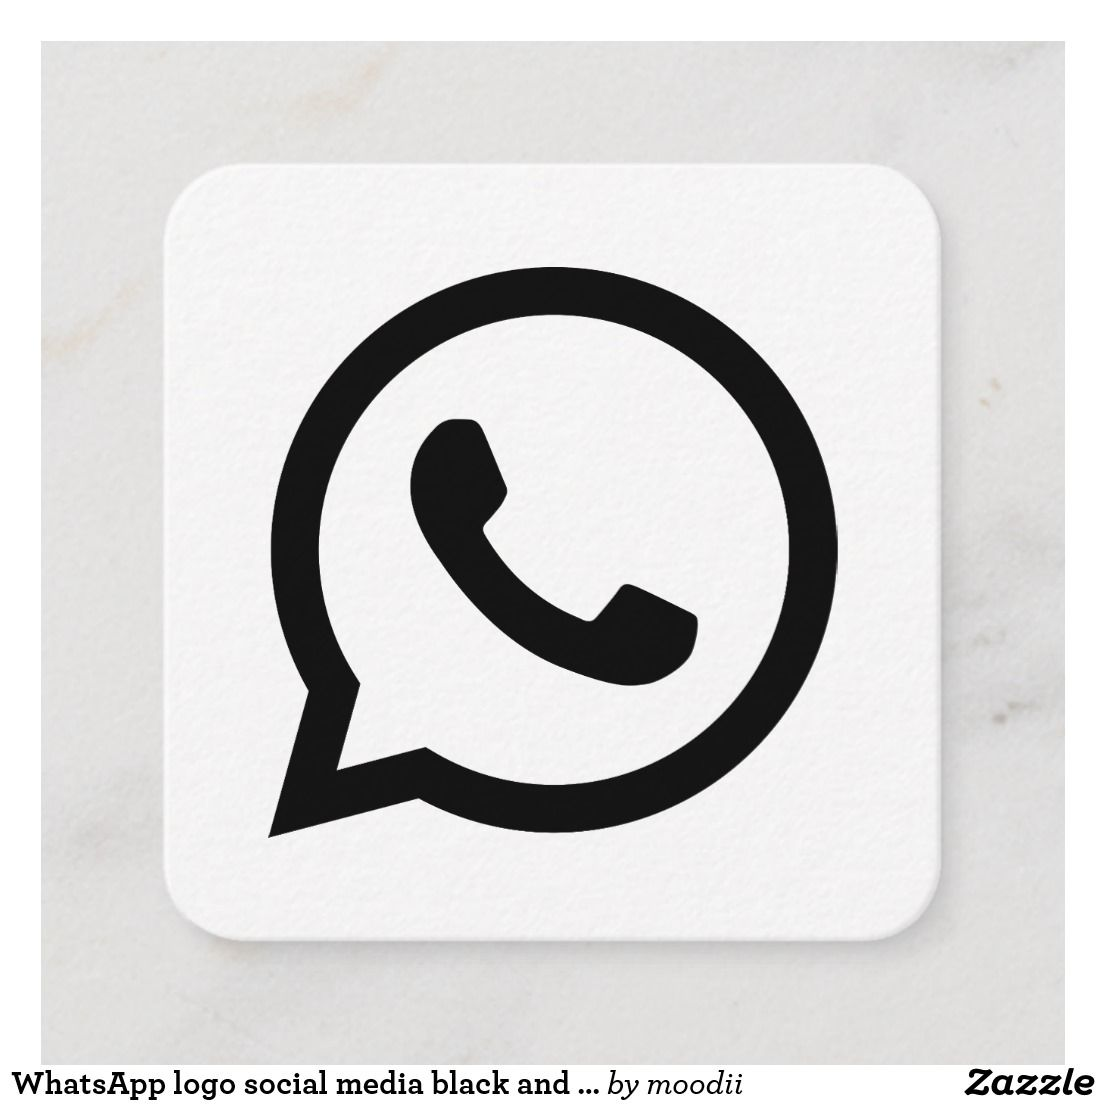 WhatsApp logo social media black and white promo Calling